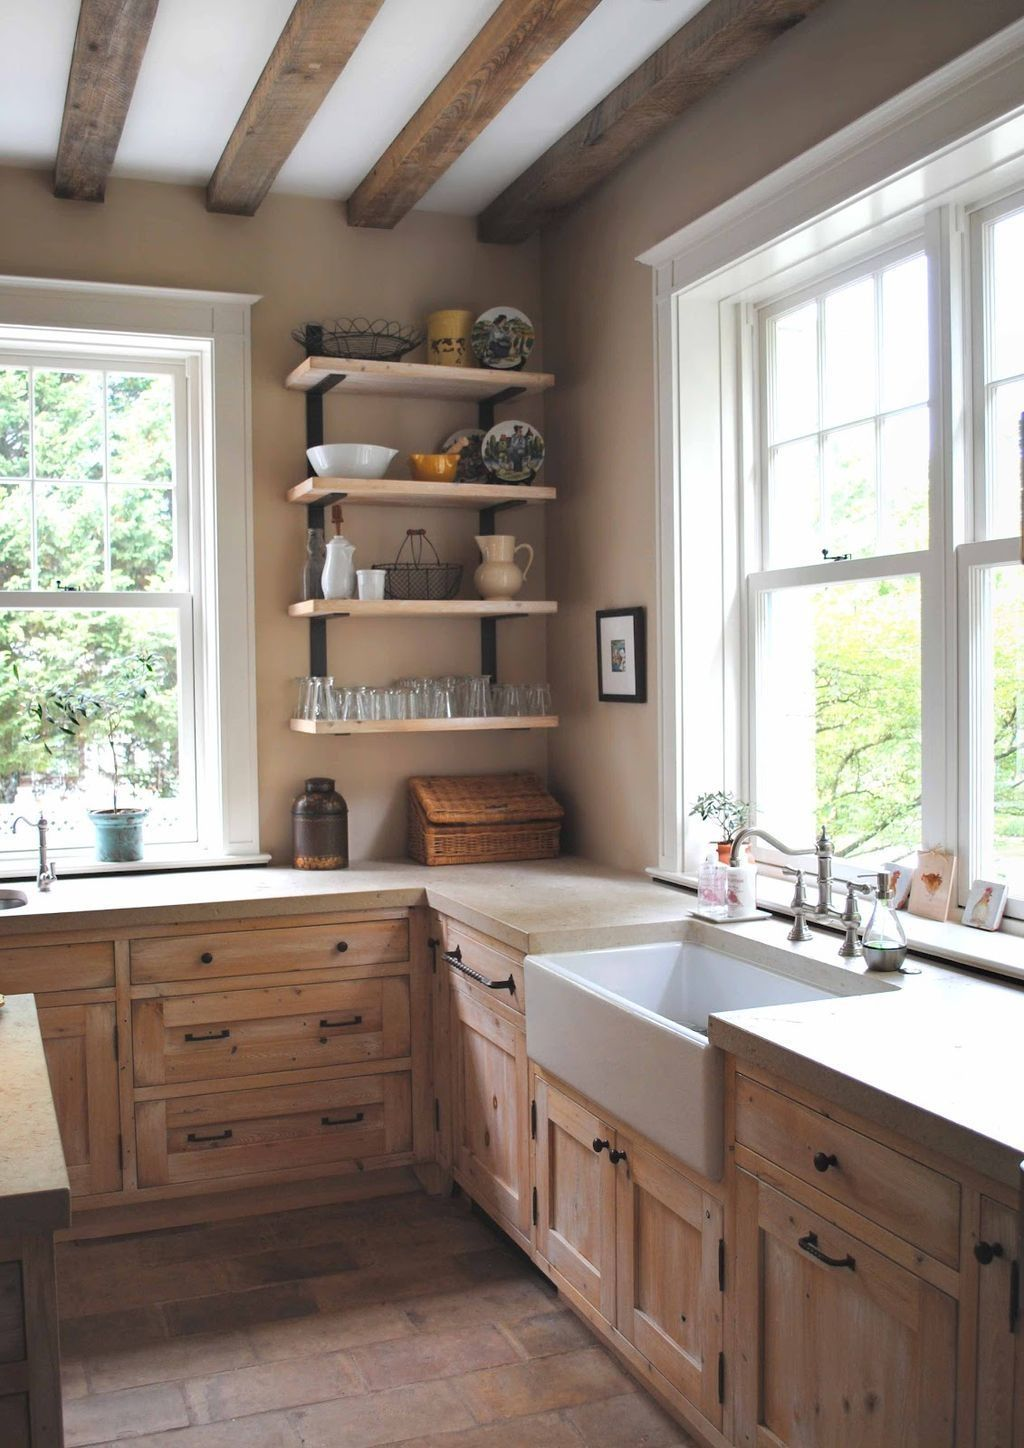 Above window shelf ideas  nice  modern french country kitchen decoration ideas for your home